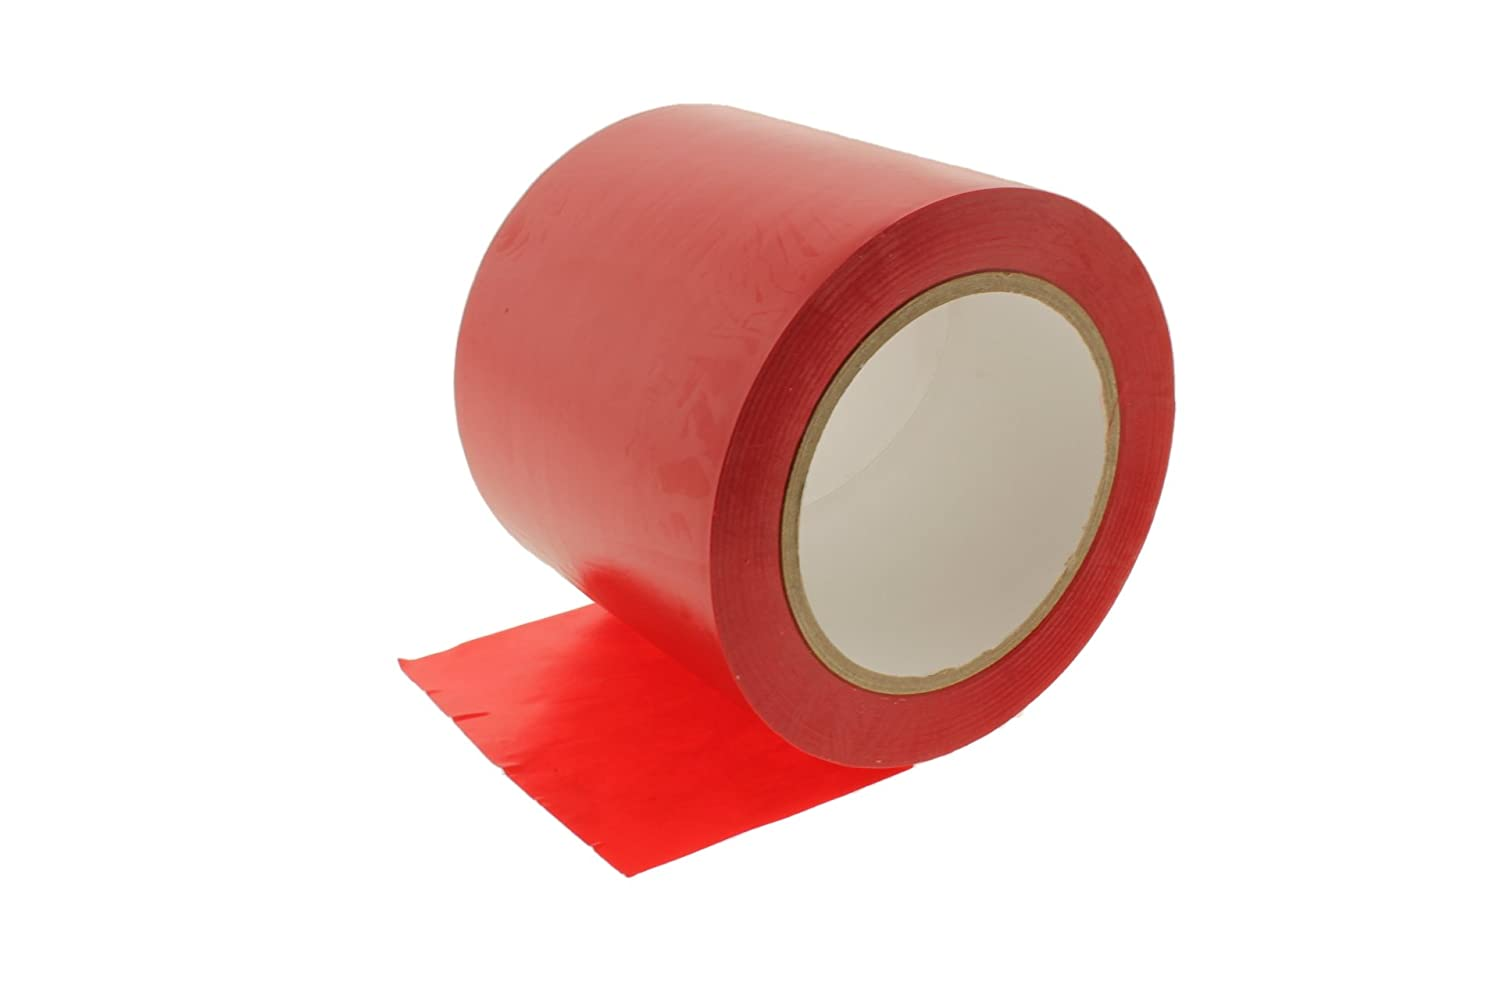 4 General Purpose Red Insulated Adhesive PVC Vinyl Sealing Coding Marking Electrical Tape 3.76 in 96MM 36 yard 7 mil